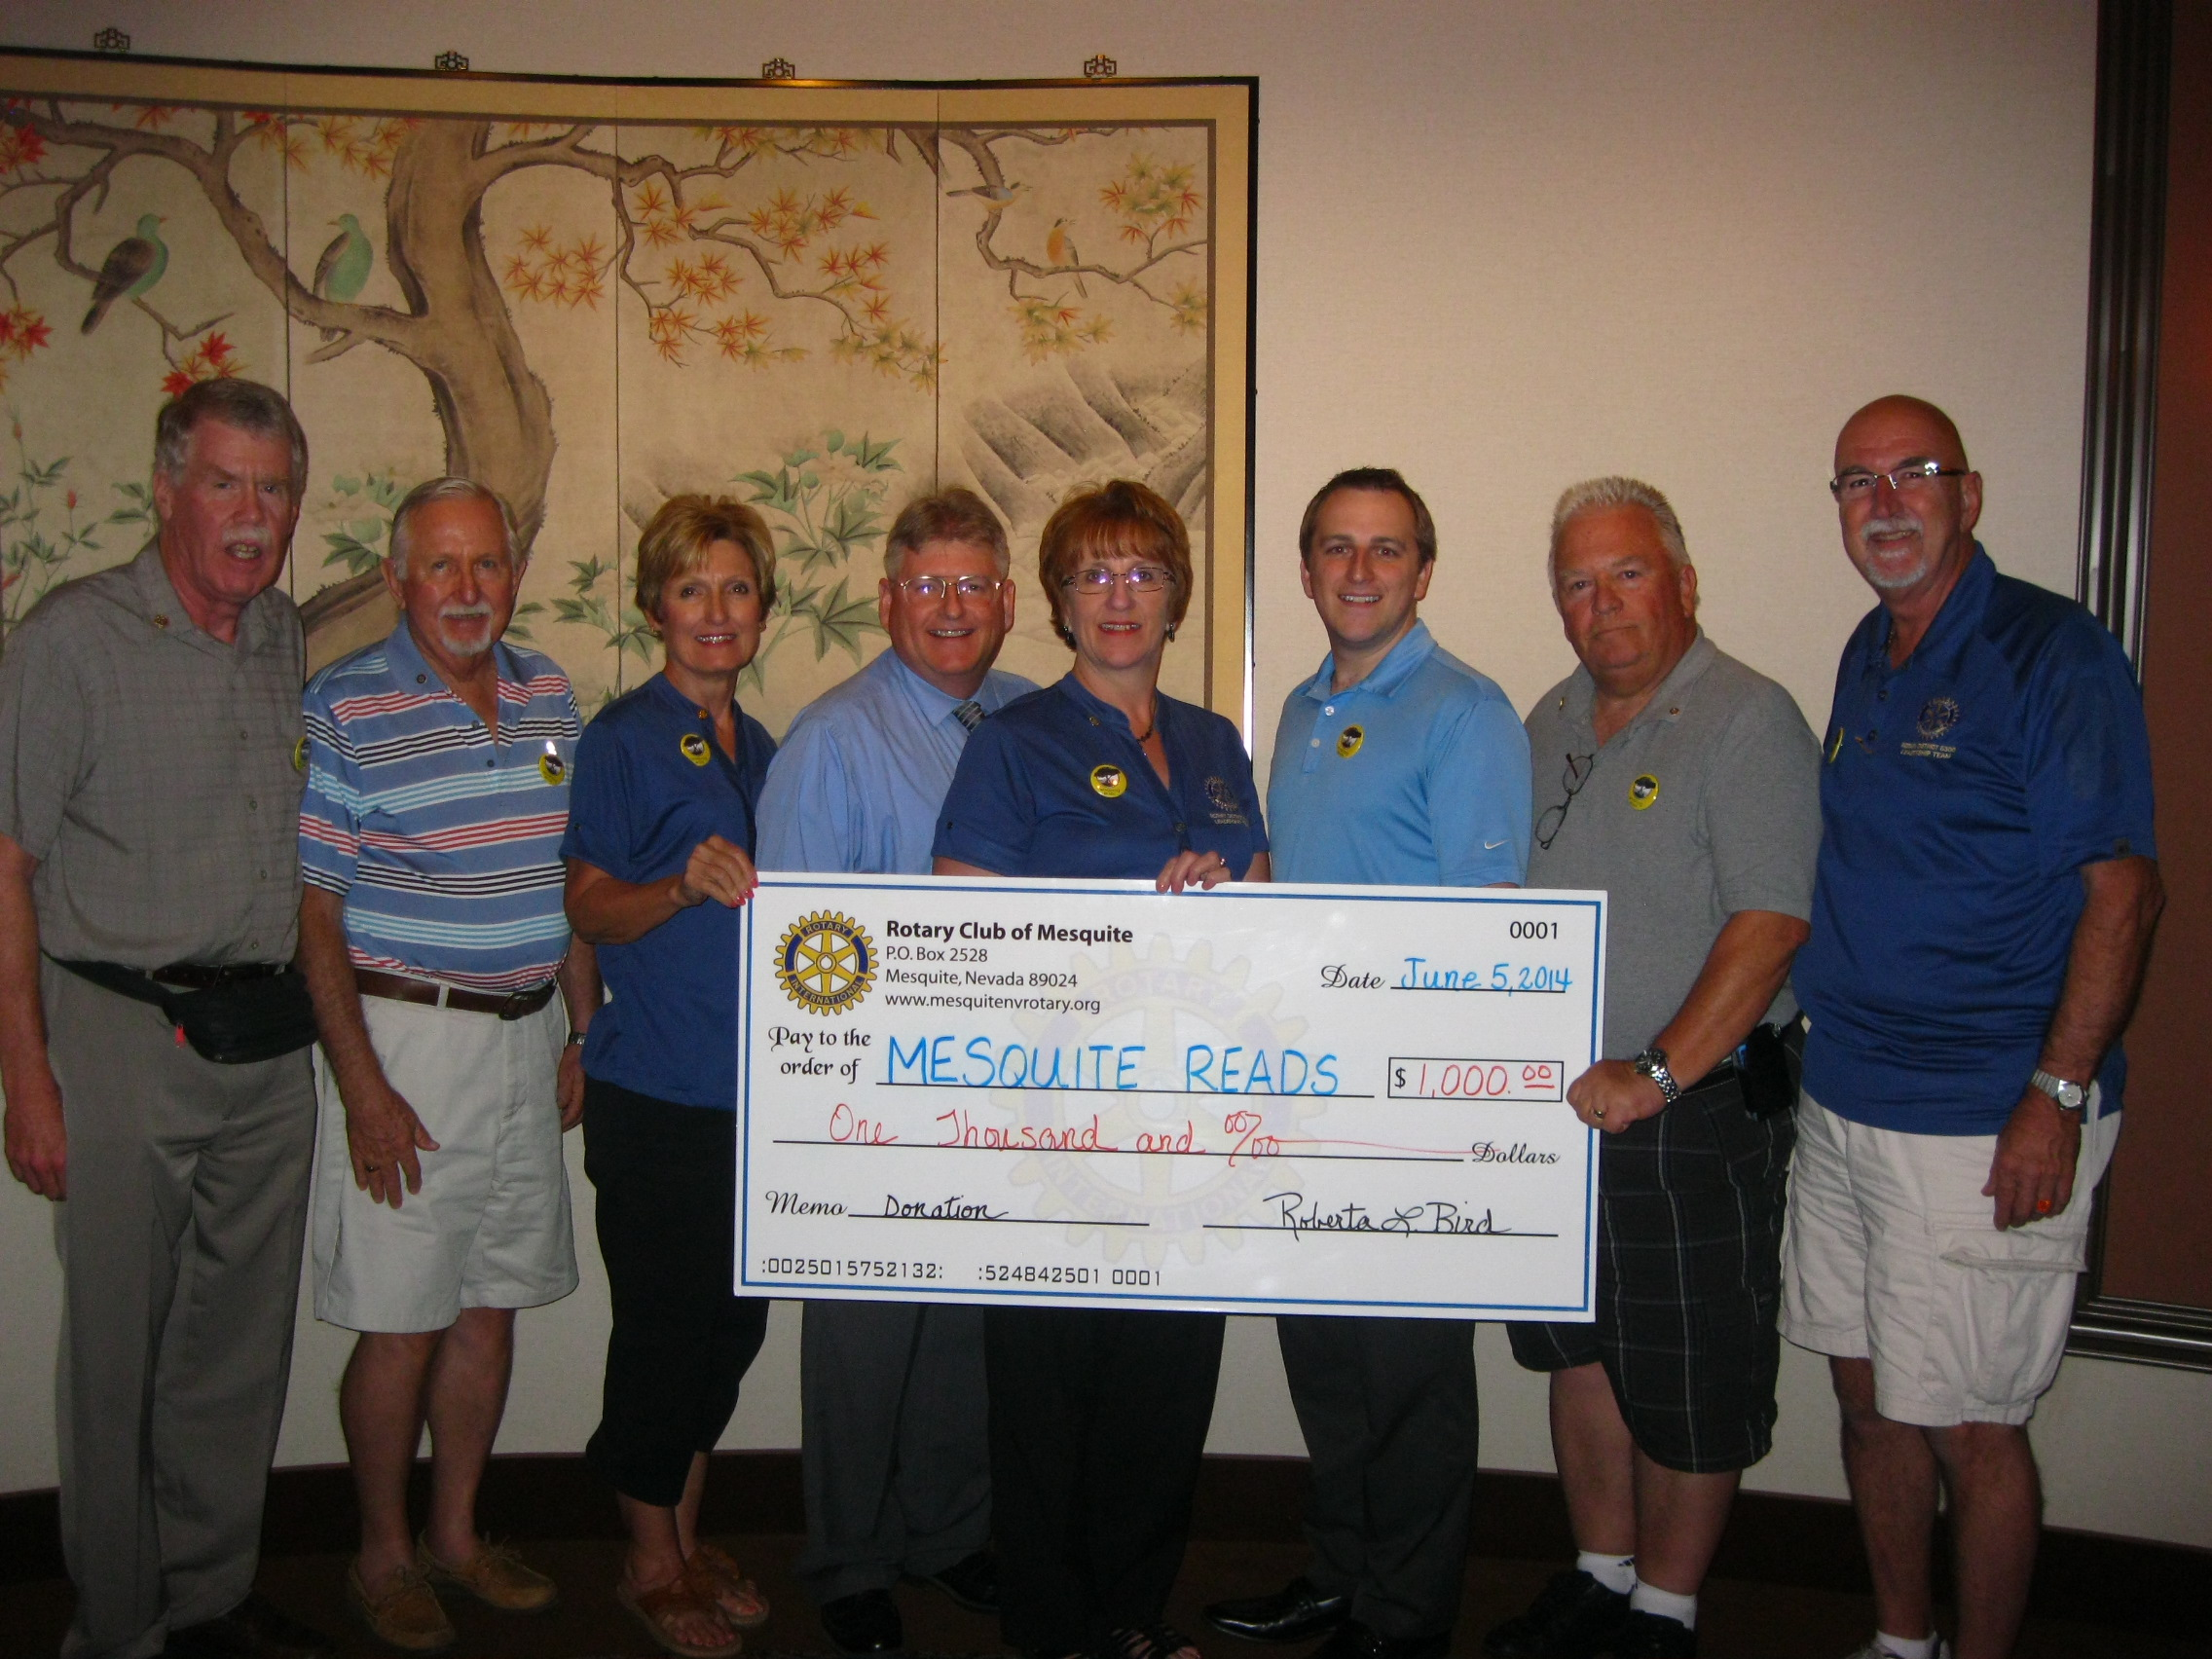 Rotary gives youth a chance to read